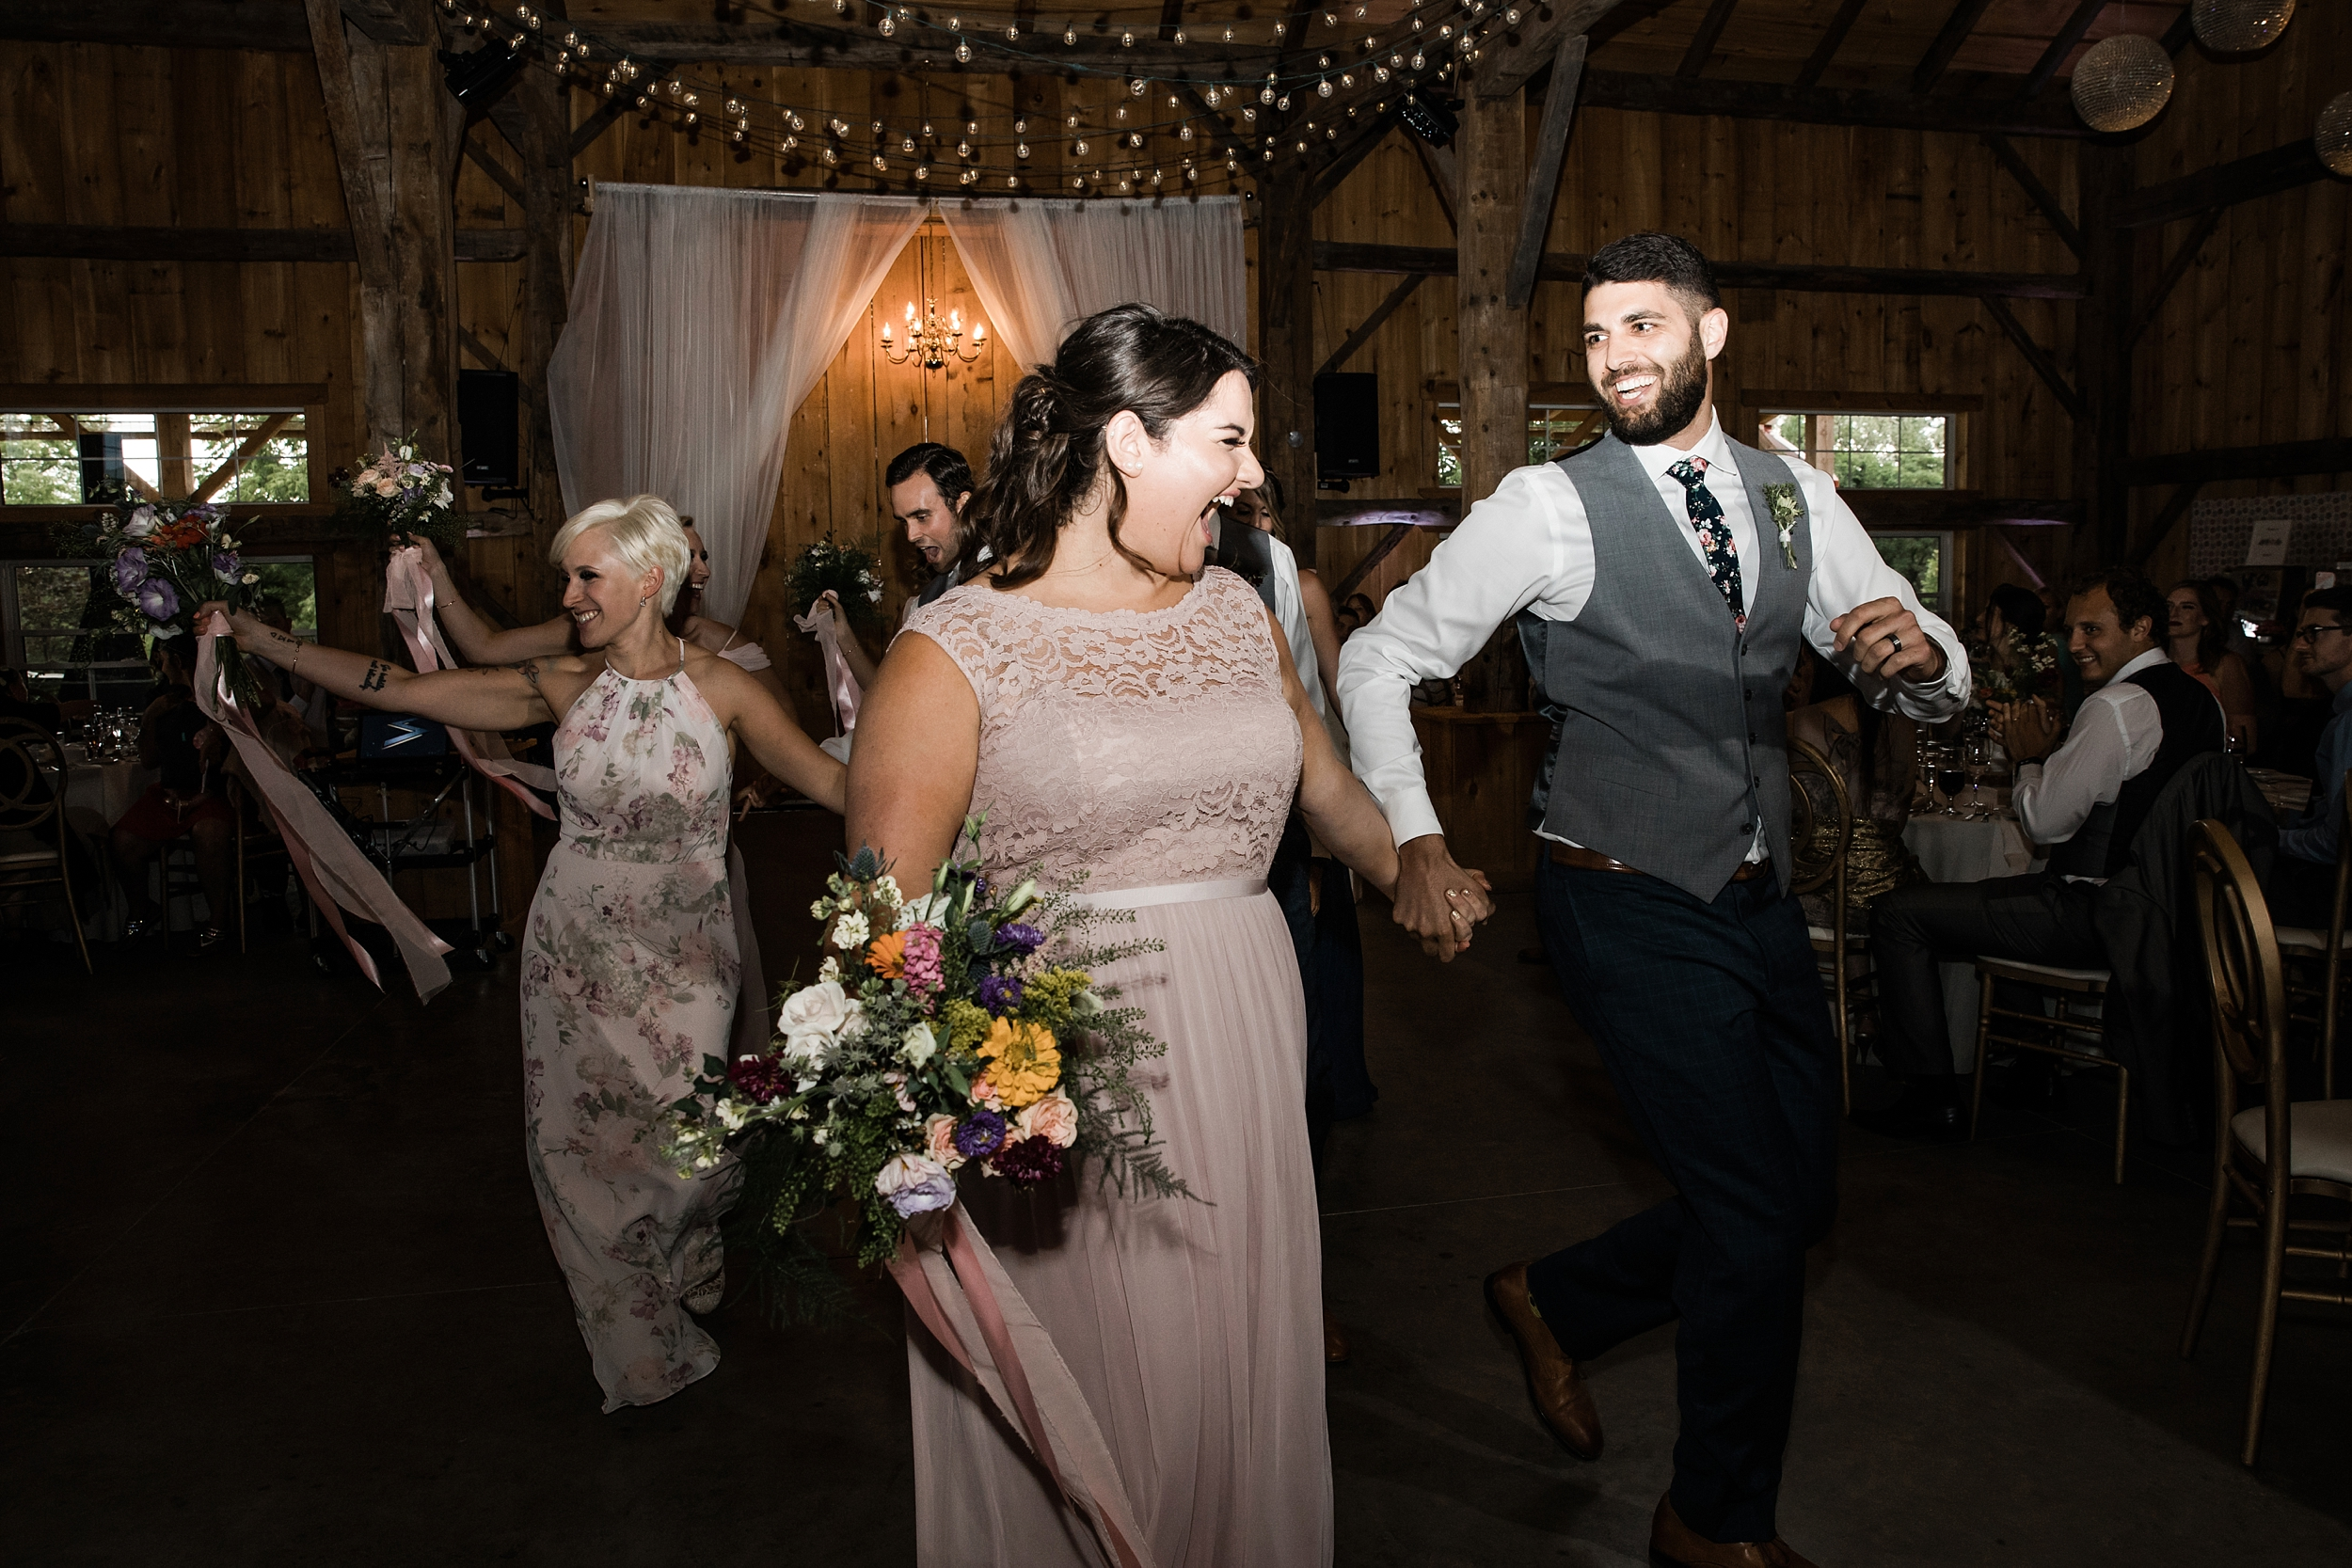 stonewallestates-weddingphotography_0050.jpg